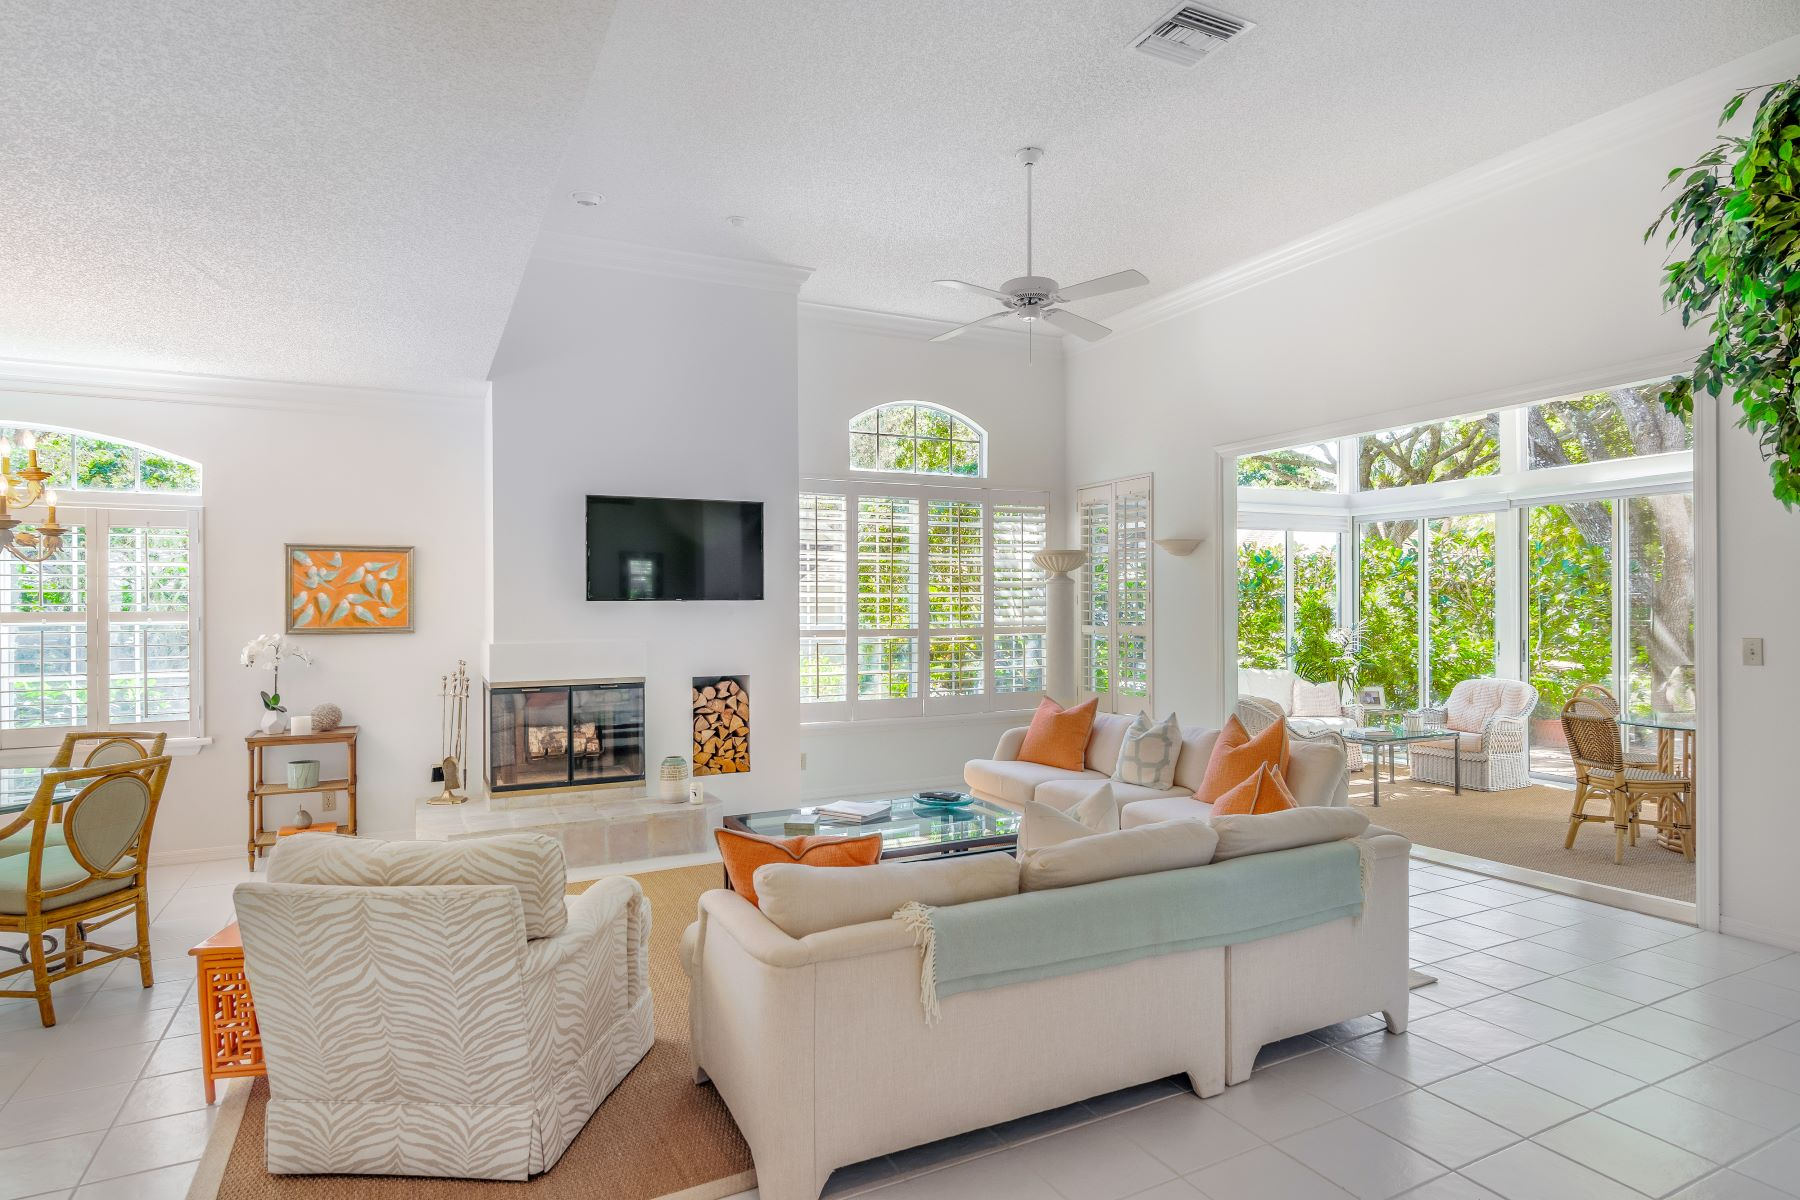 Single Family Homes for Sale at 1521 Orchid Drive, Vero Beach, FL 1521 Orchid Drive Vero Beach, Florida 32963 United States